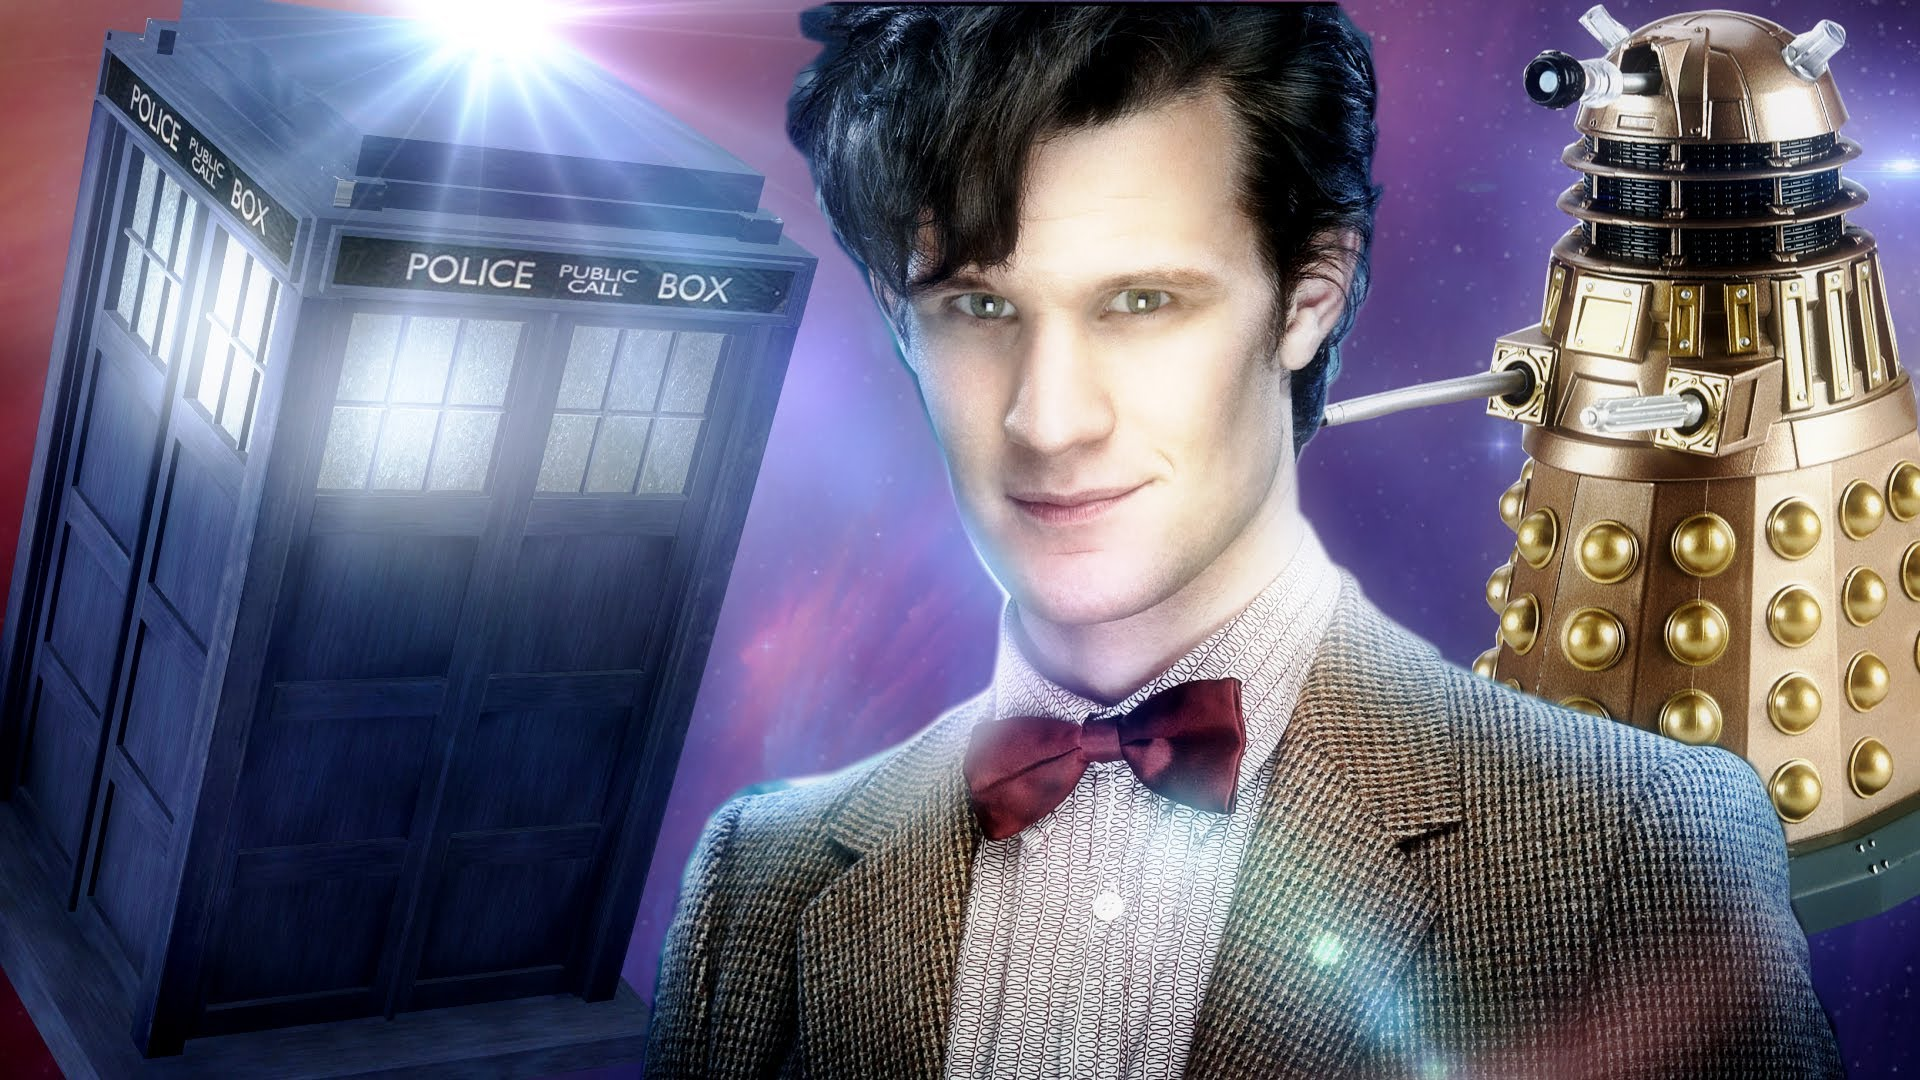 DOCTOR WHO – THE MUSICAL